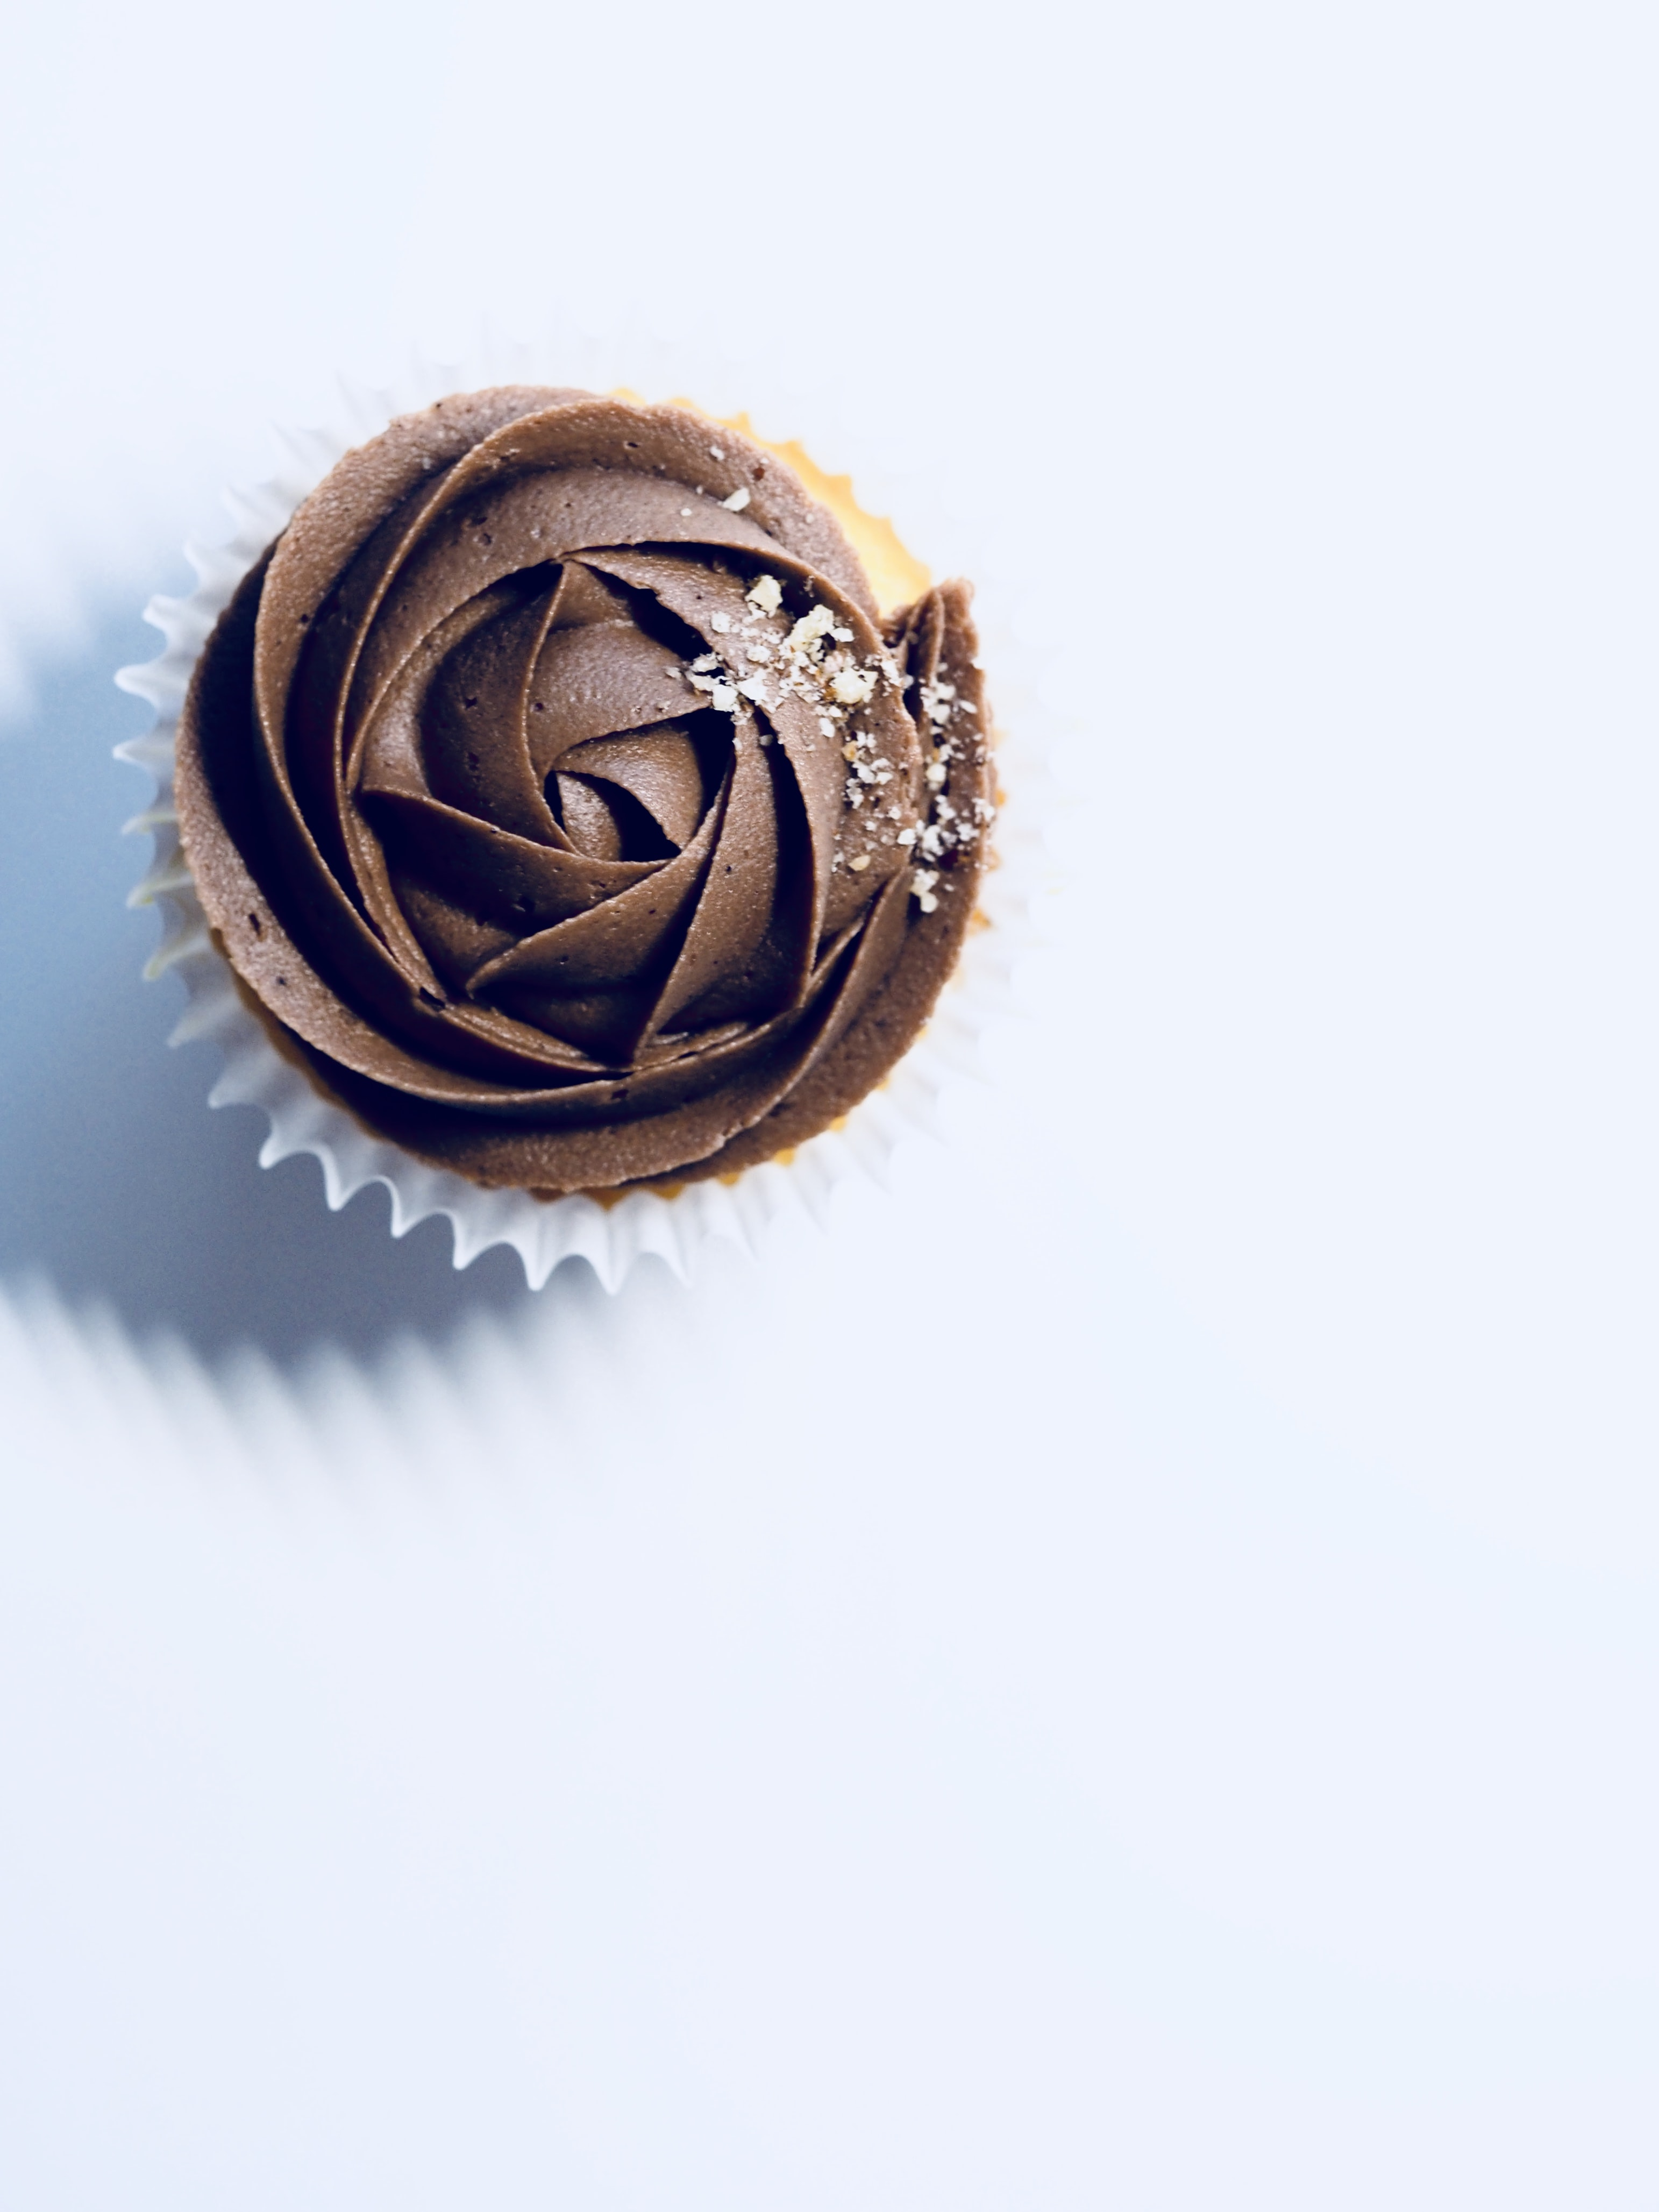 chocolate cupcake on white surface